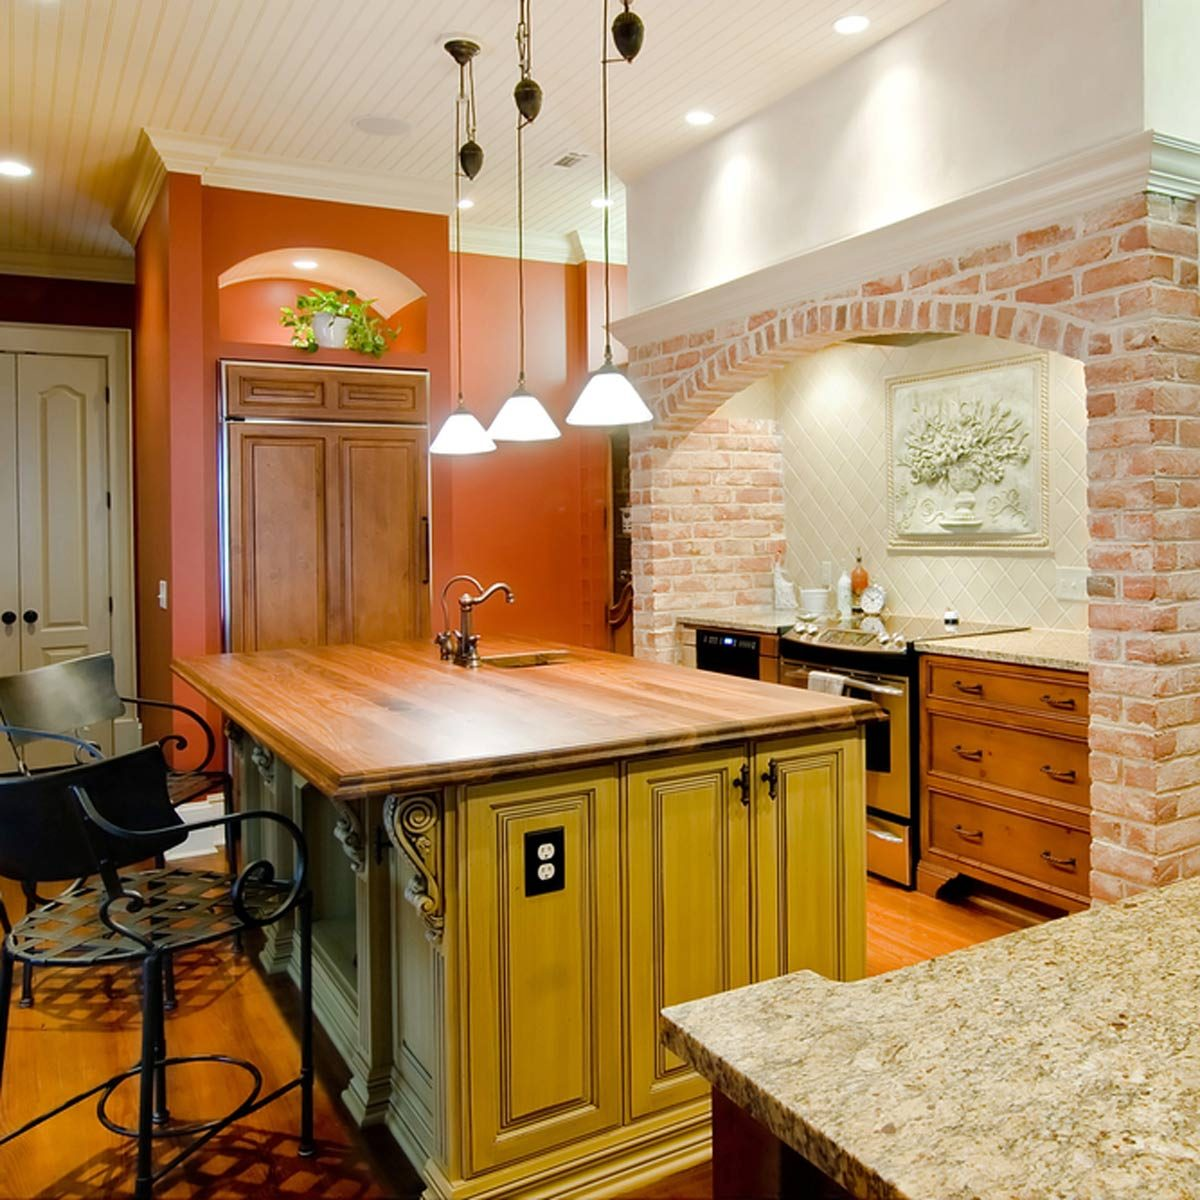 12 Kitchen Color Trends That Are Hot Right Now